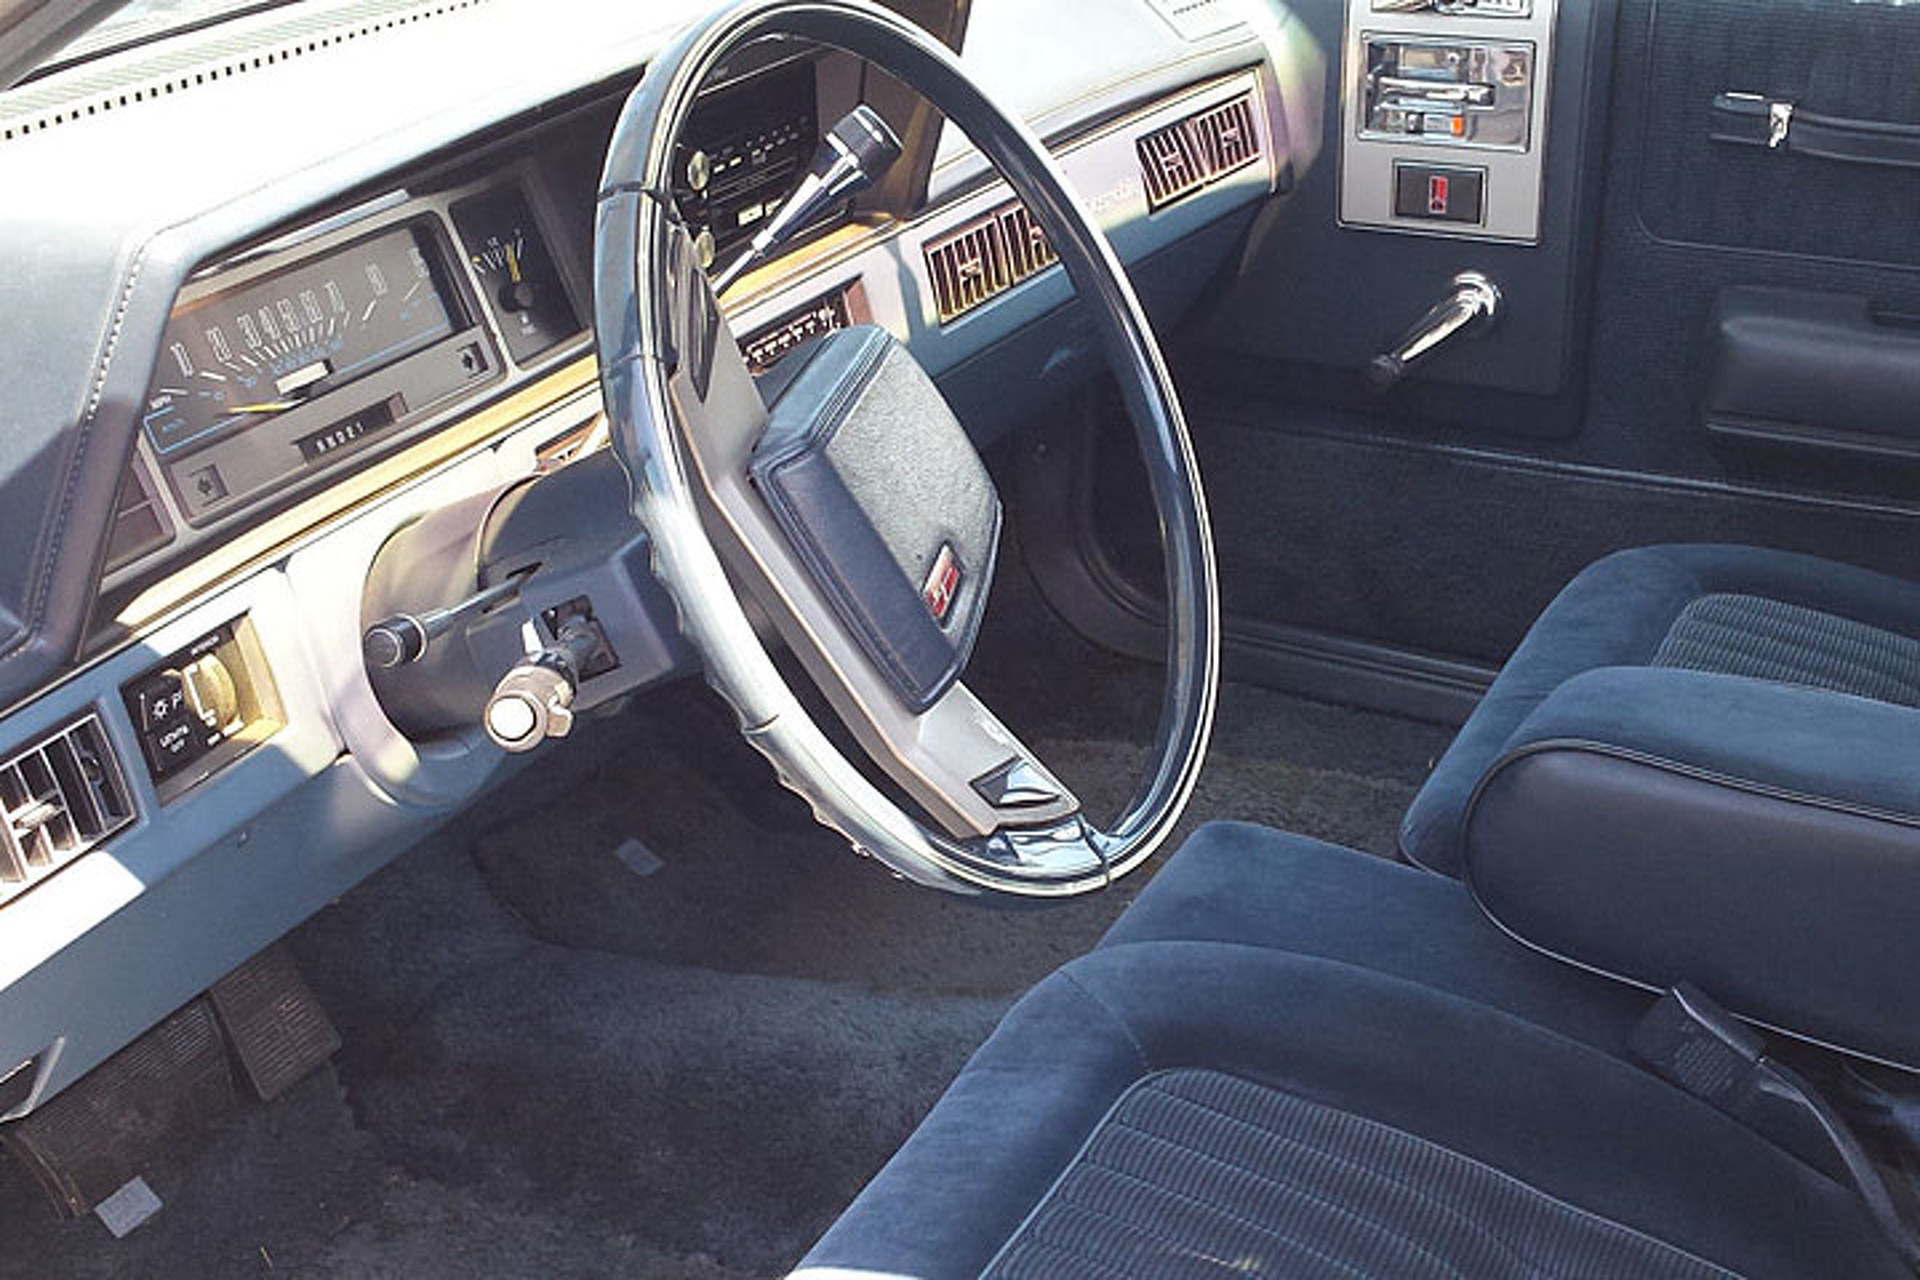 Hillary Clinton's 1986 Oldsmobile Cutlass is Up for Sale